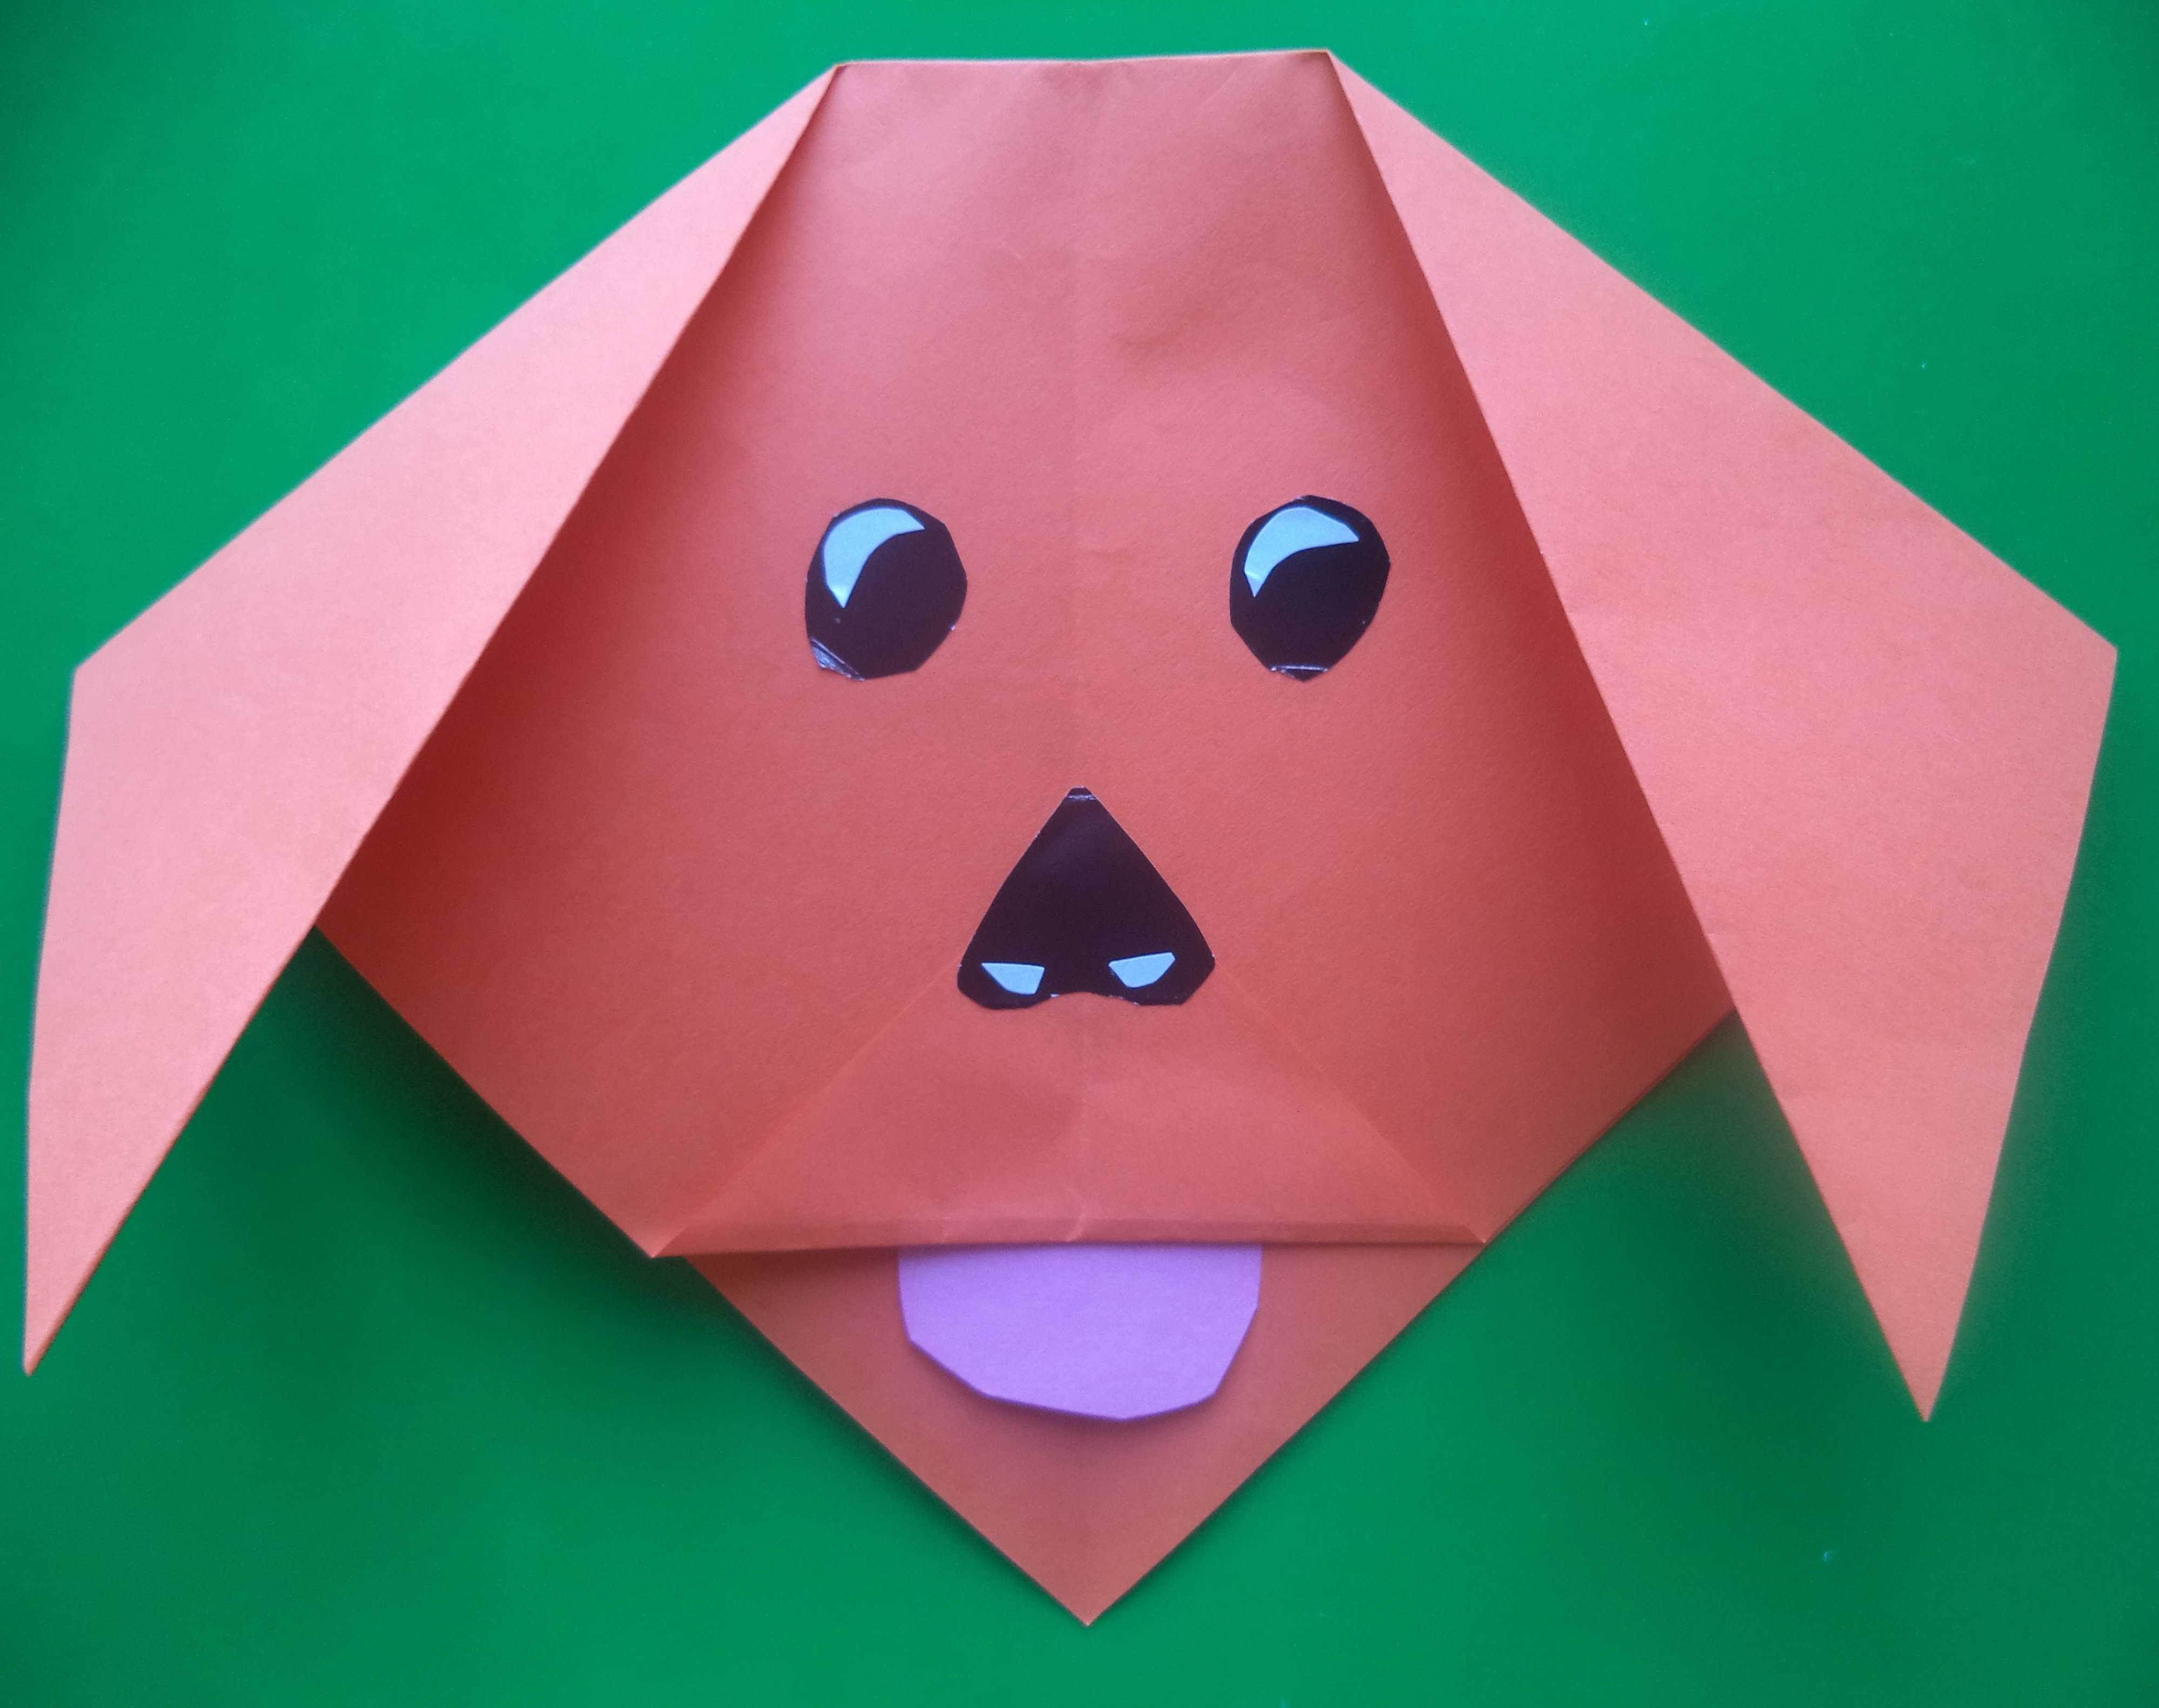 Simple and Cute Construction Paper Crafts for Kids Papercraft Kids Construction Paper Craft Ideas For Kids